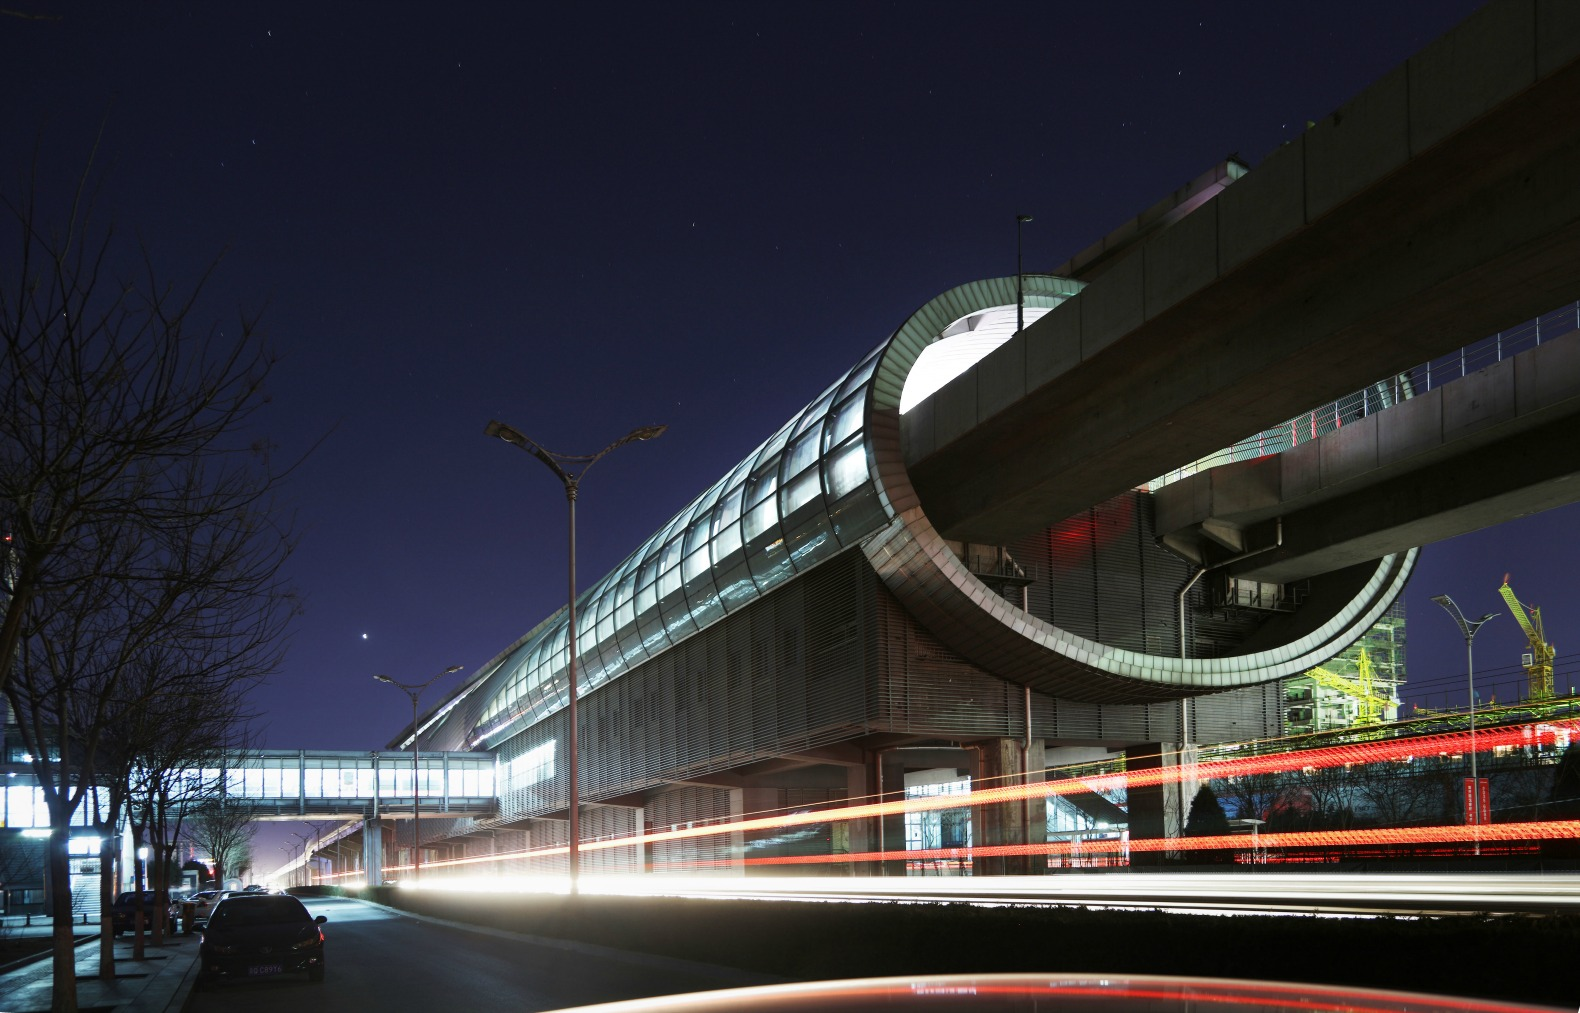 Beijing's futuristic new subway stations are straight out of Blade Runner